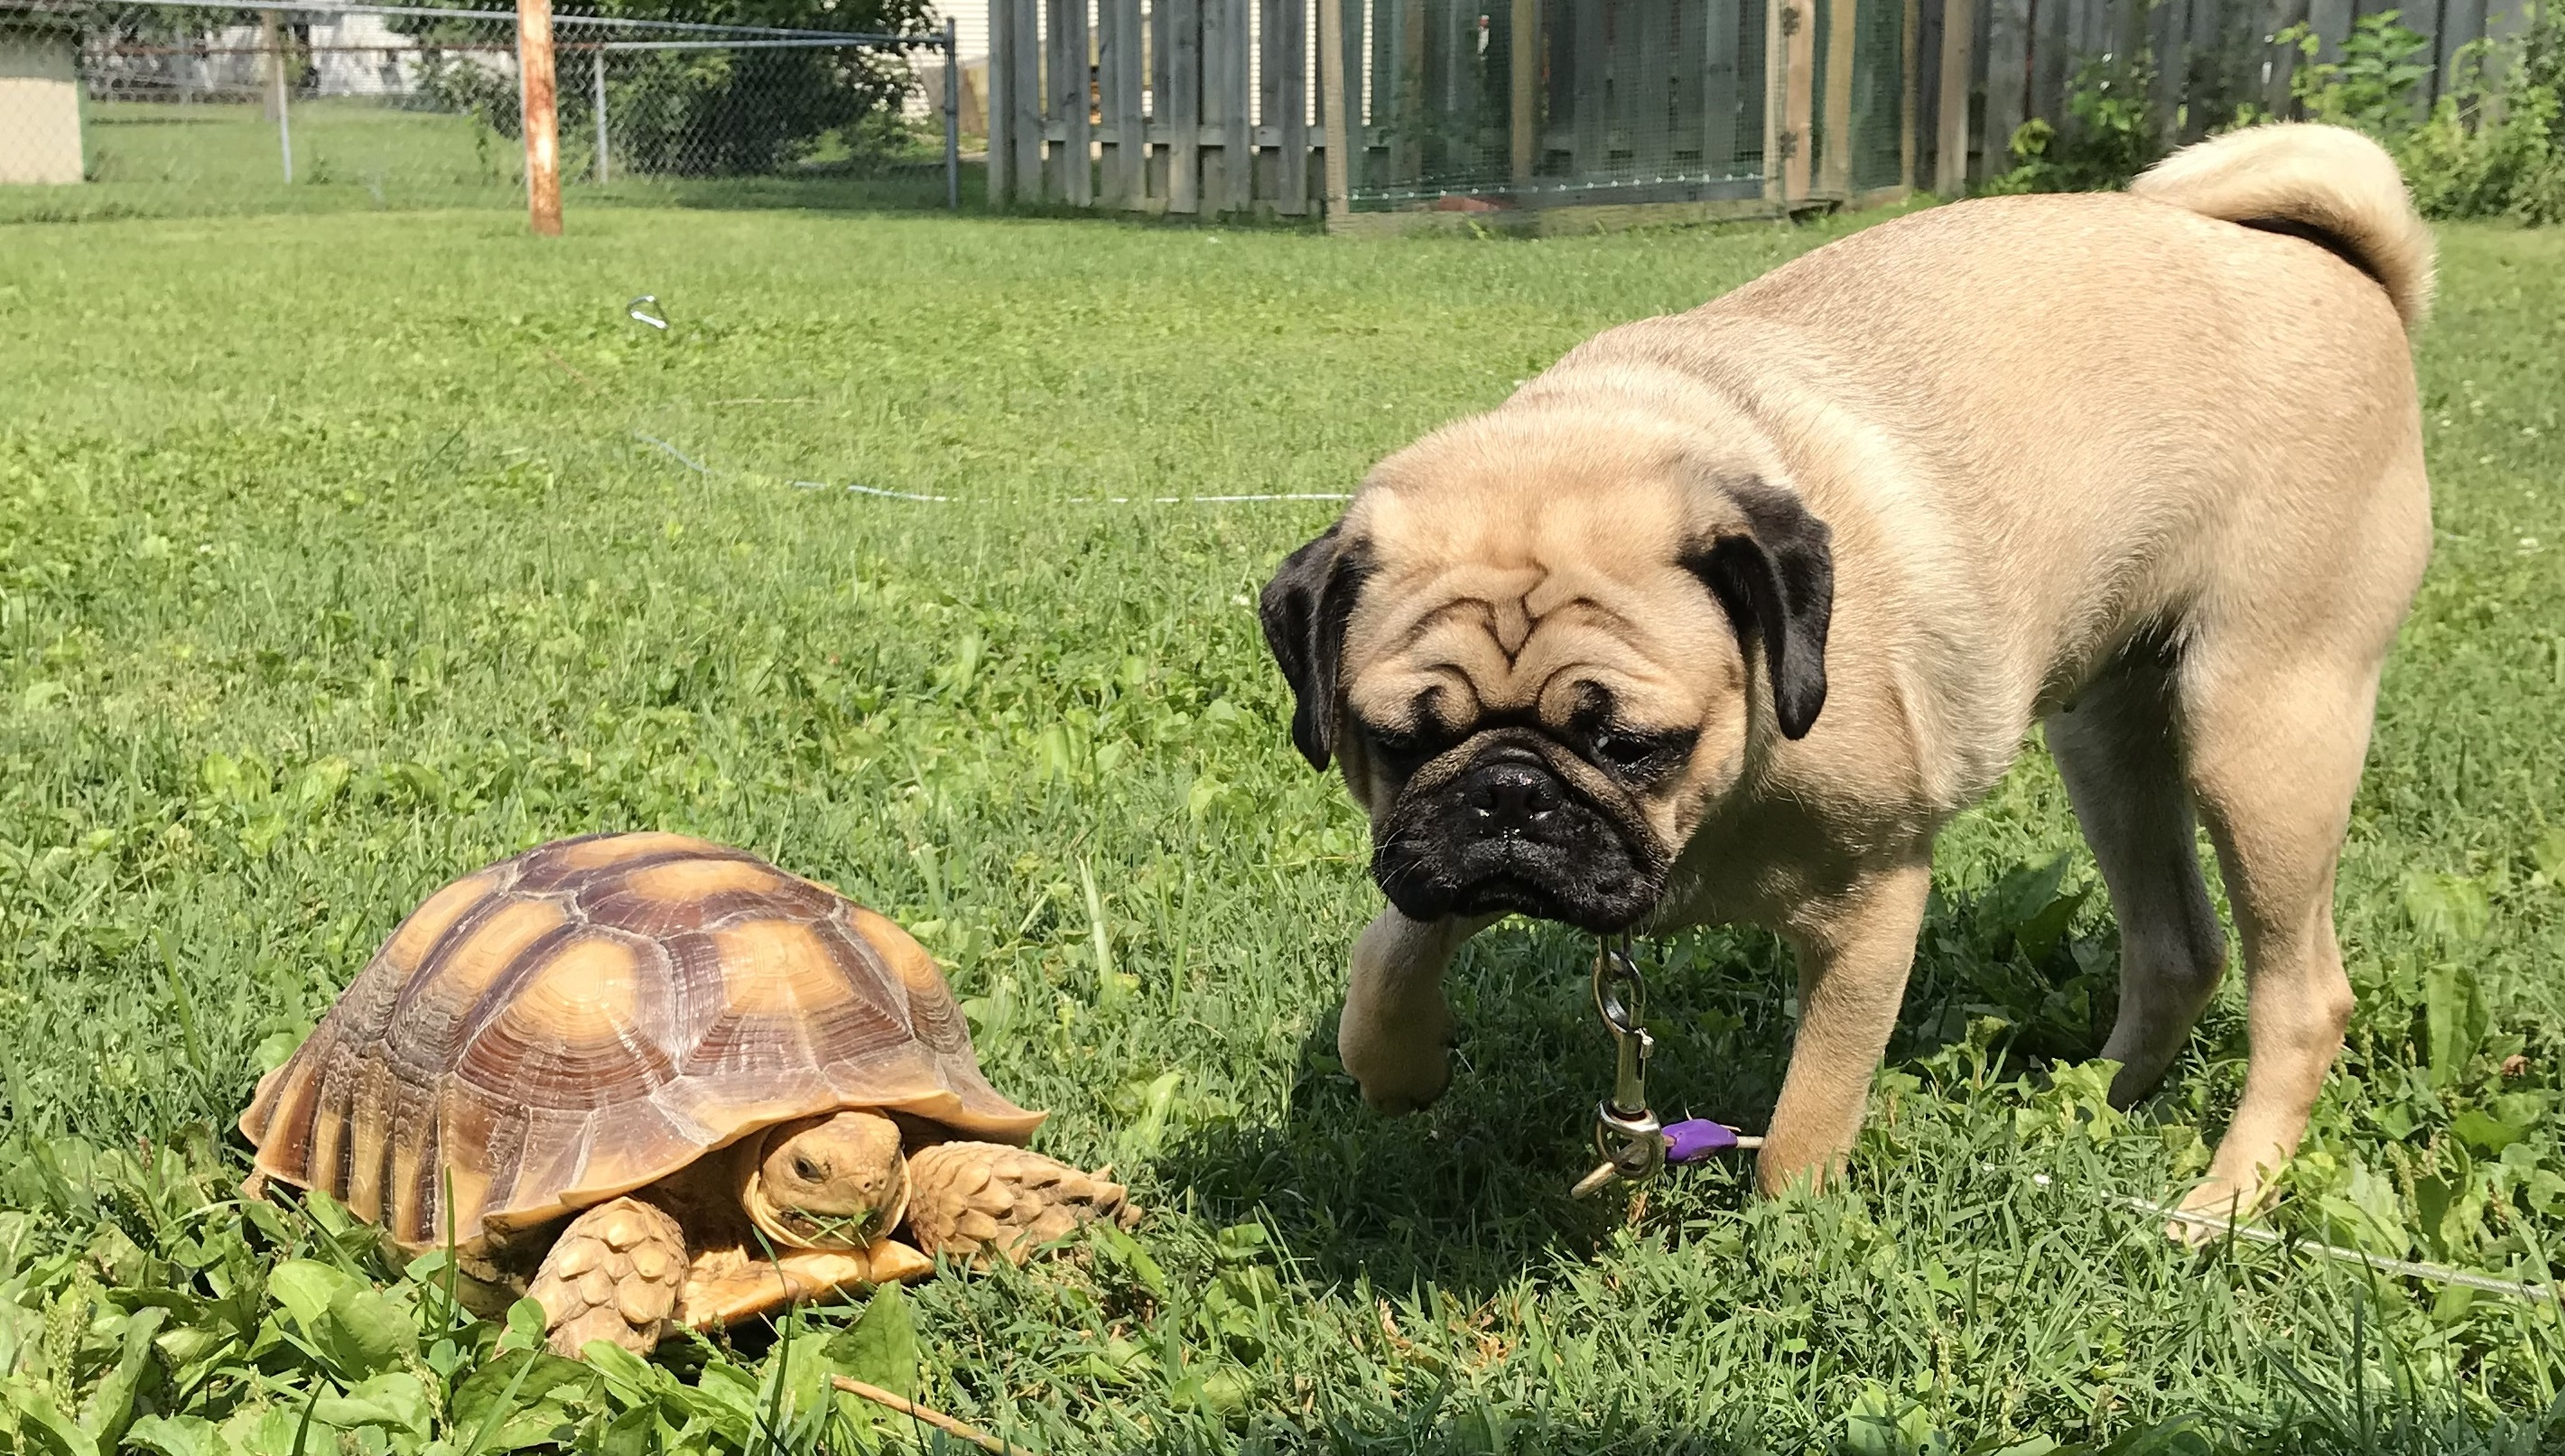 Tortoise and dog